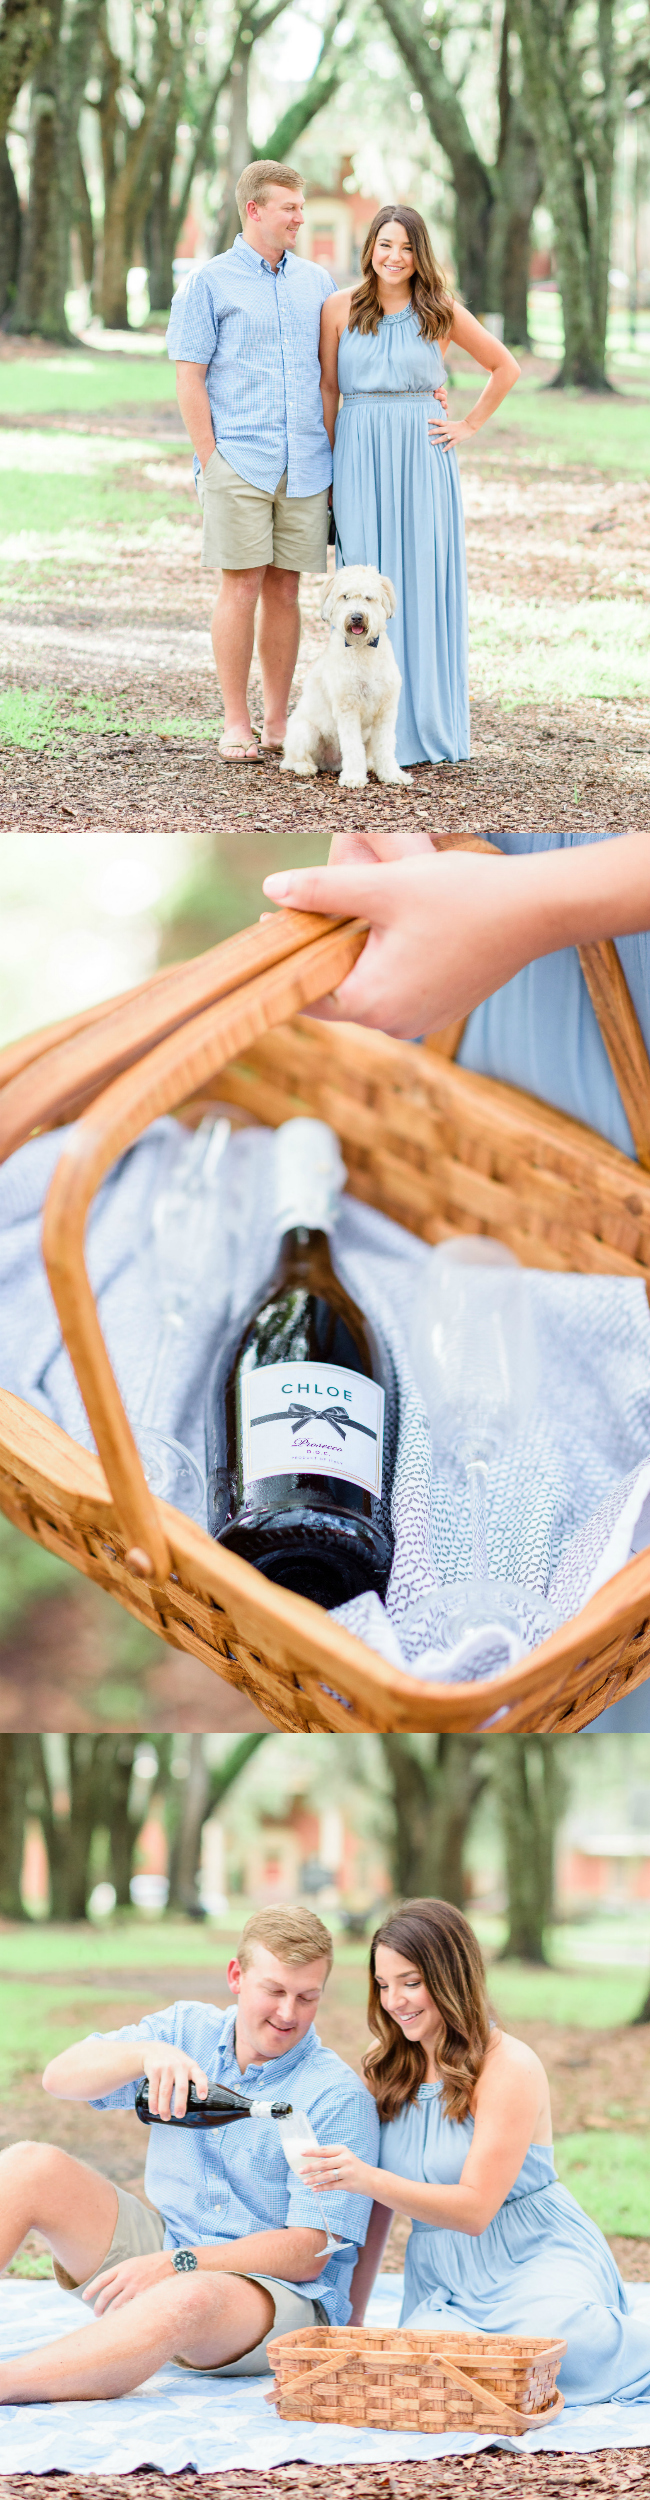 Picnic and champagne toast engagement photos | Photo Credit: The Veil Wedding Photography